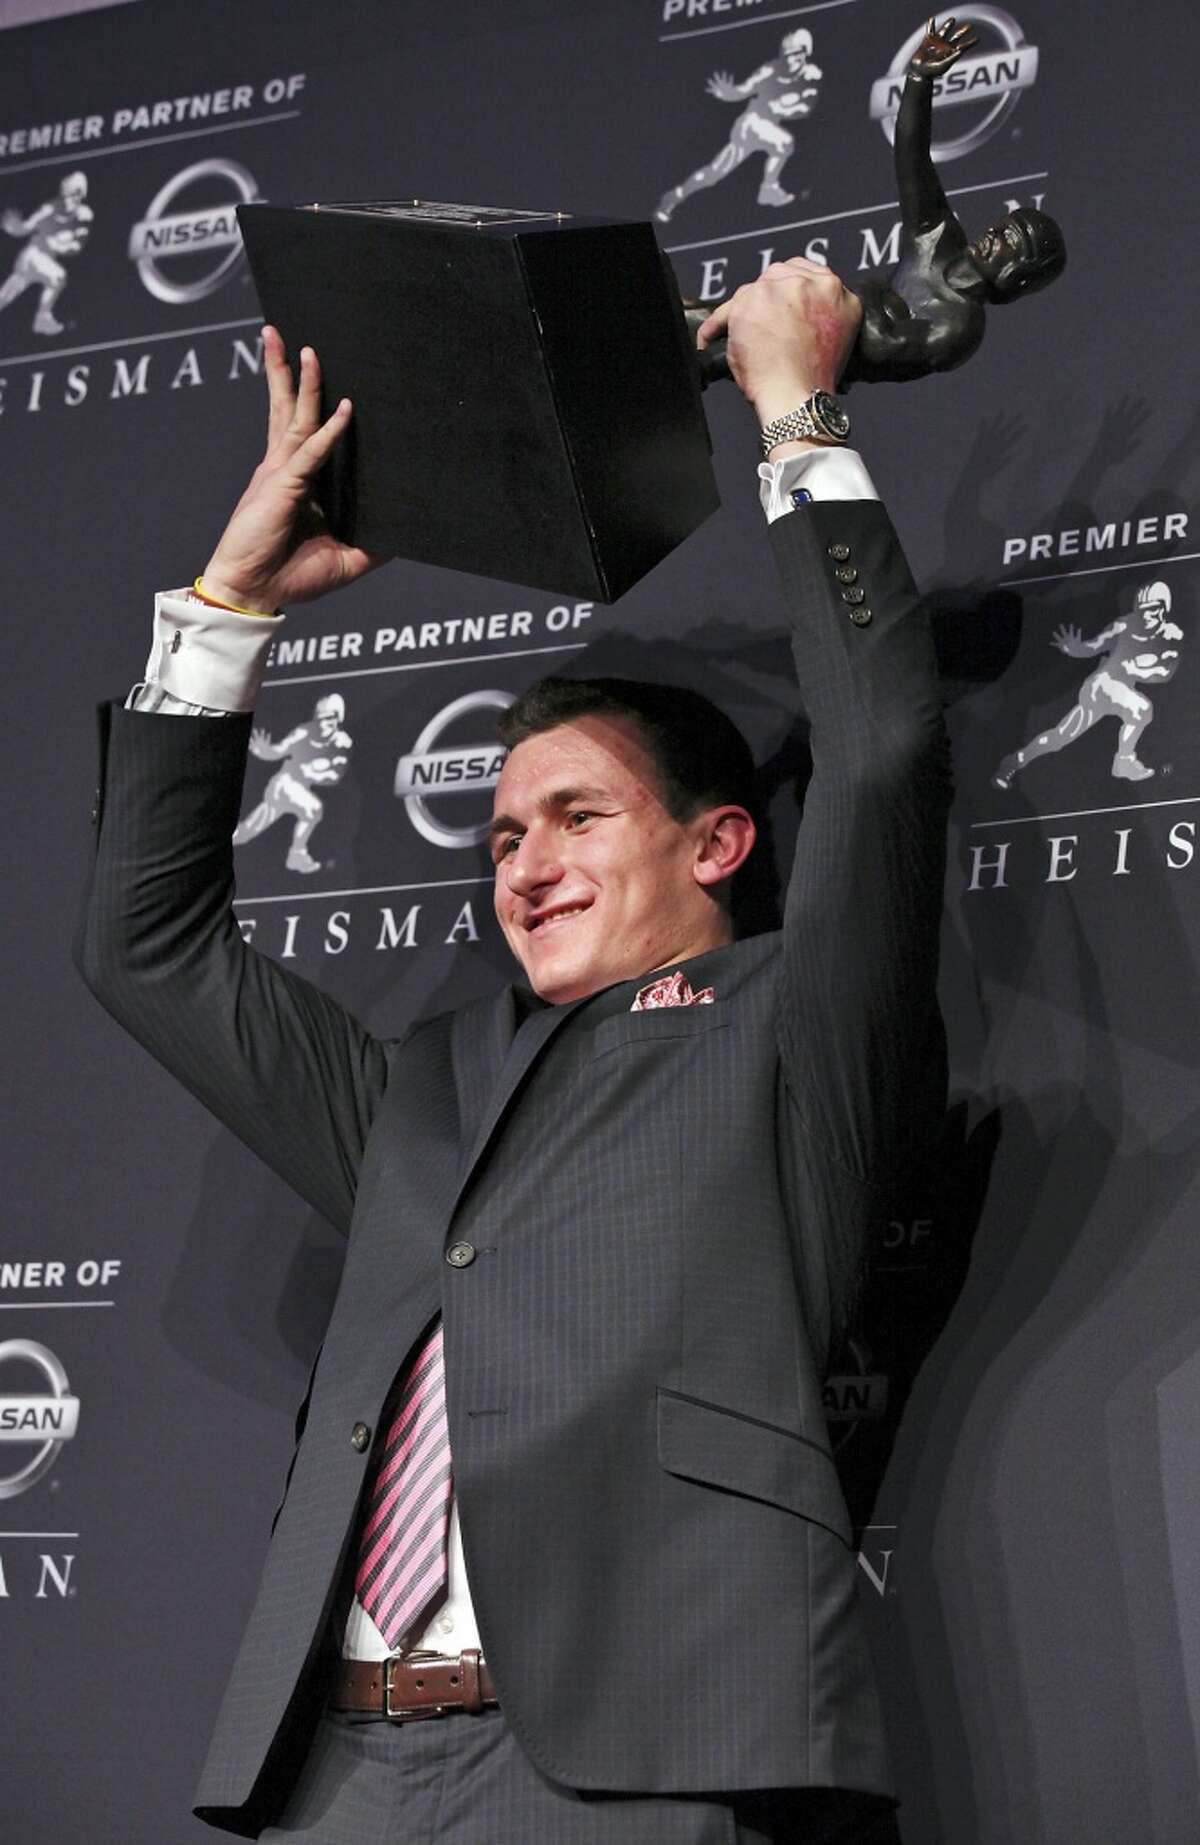 Texas A&M's quarterback Johnny Manziel, the 2012 Heisman Trophy winner, poses for photos during a press conference Saturday Dec. 8, 2012 at the New York Marriott Marquis hotel in New York, New York.